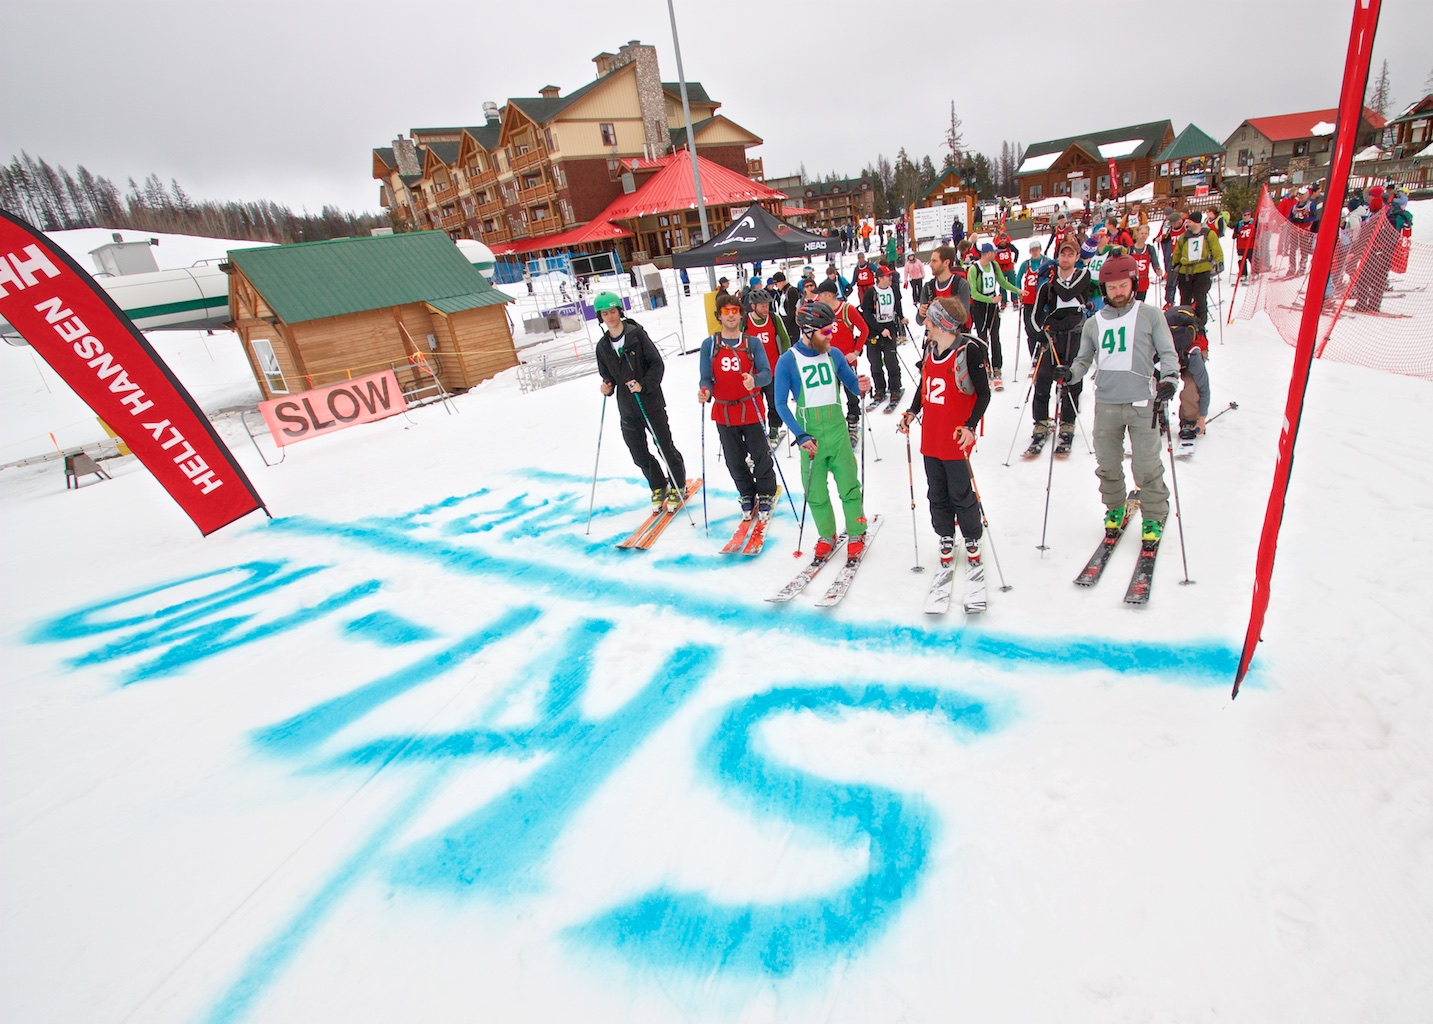 Kimberley Alpine Resort hosts 2nd annual North Star Ski-Mo Race